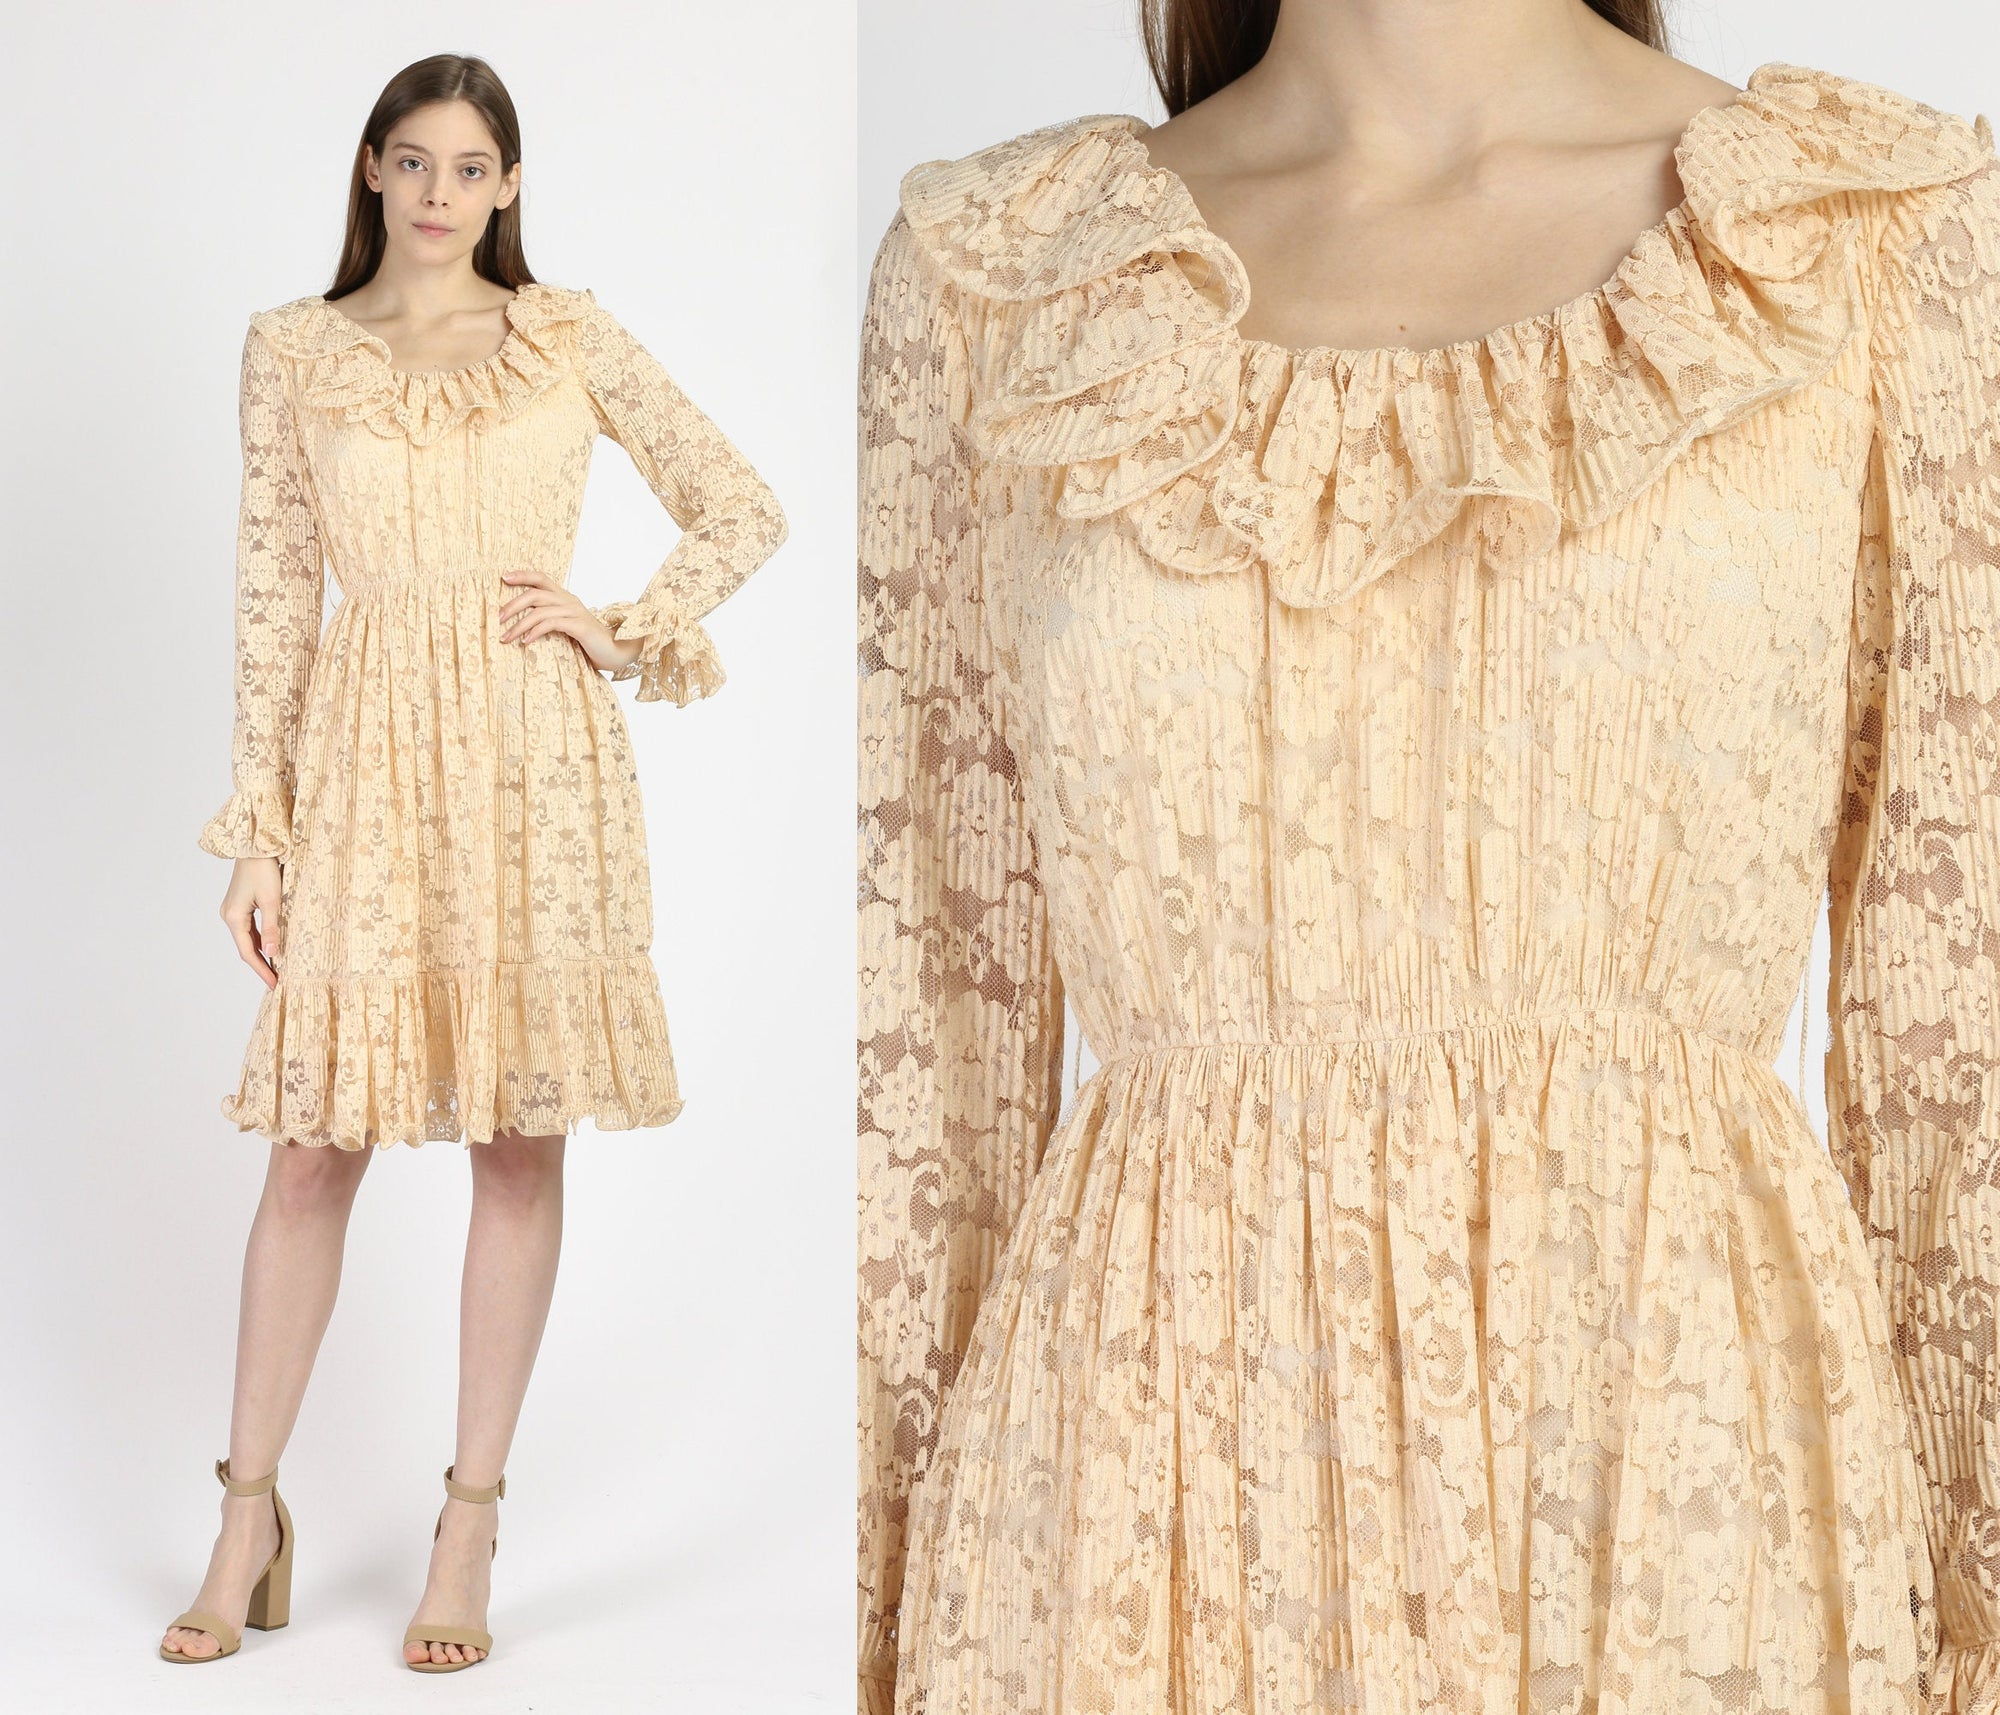 60s 70s Jack Bryan Peach Lace Ruffle Mini Dress - Extra Small